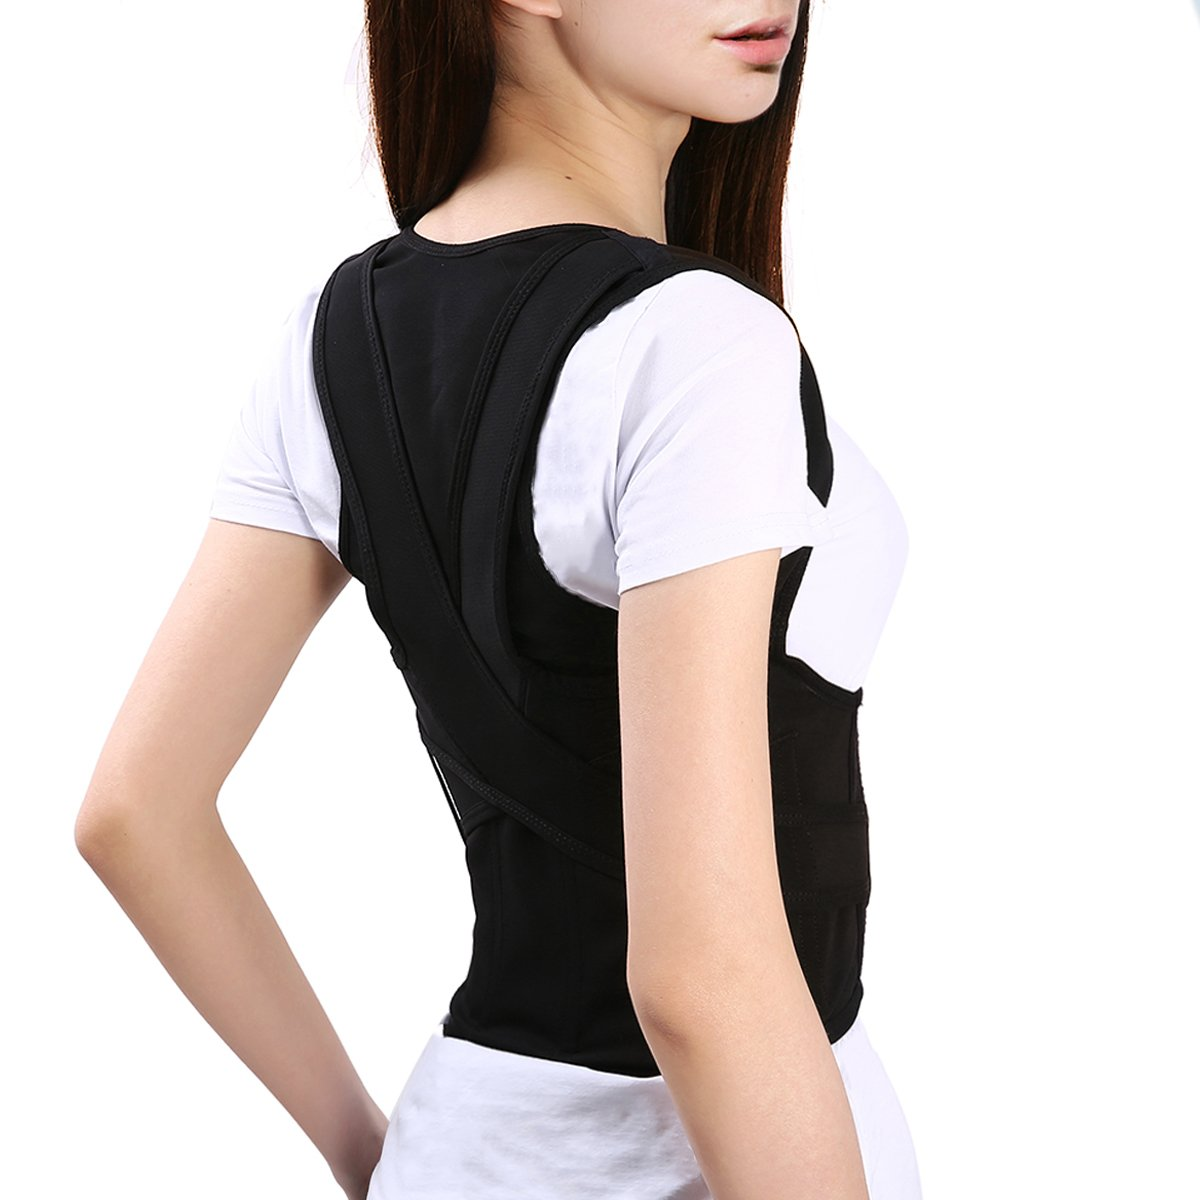 Back Posture Corrector, Slimerence Clavicle Support Brace, Back Shoulder, Neck Pain Relief, Spinal Cord, Periarthritis, Adult Students Children Men and Women Back Kyphosis Correct Belt